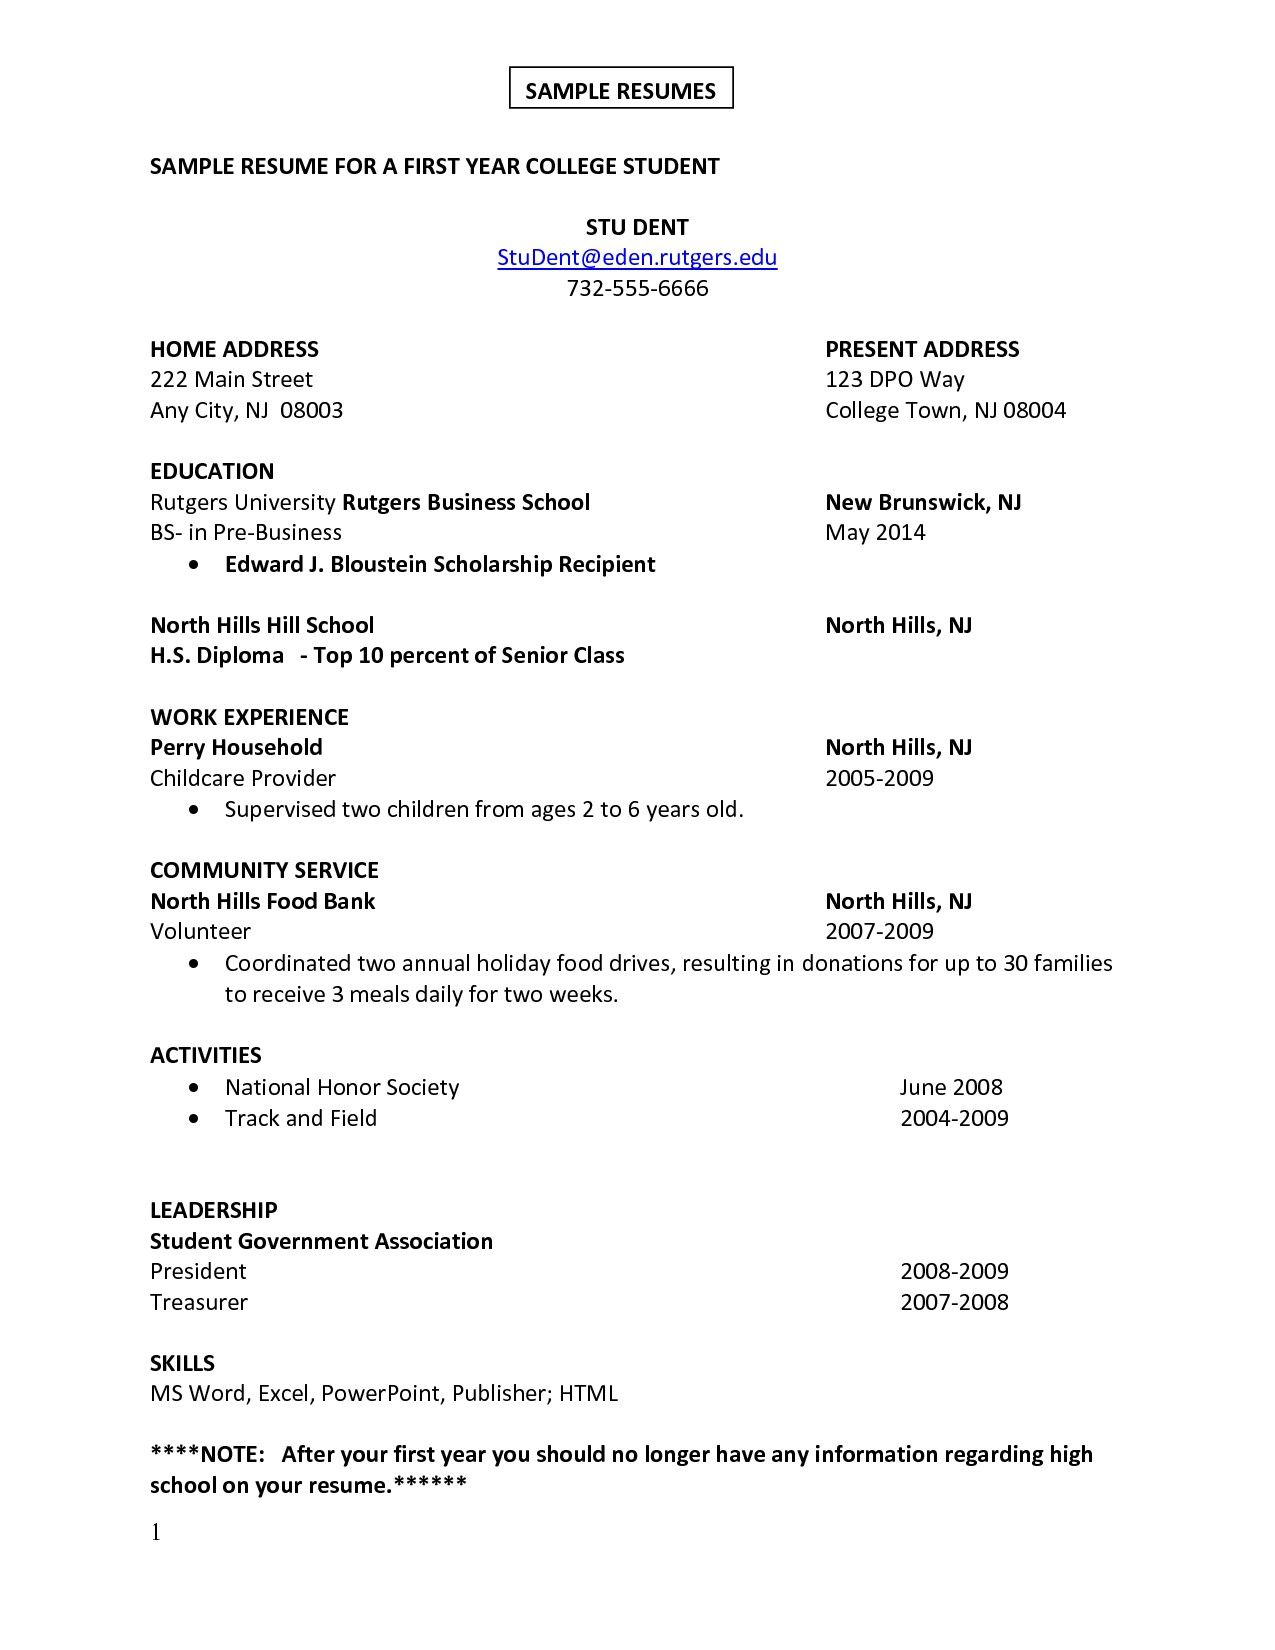 A Good Resume Example First Job Resume  Google Search  Resume  Pinterest  Sample